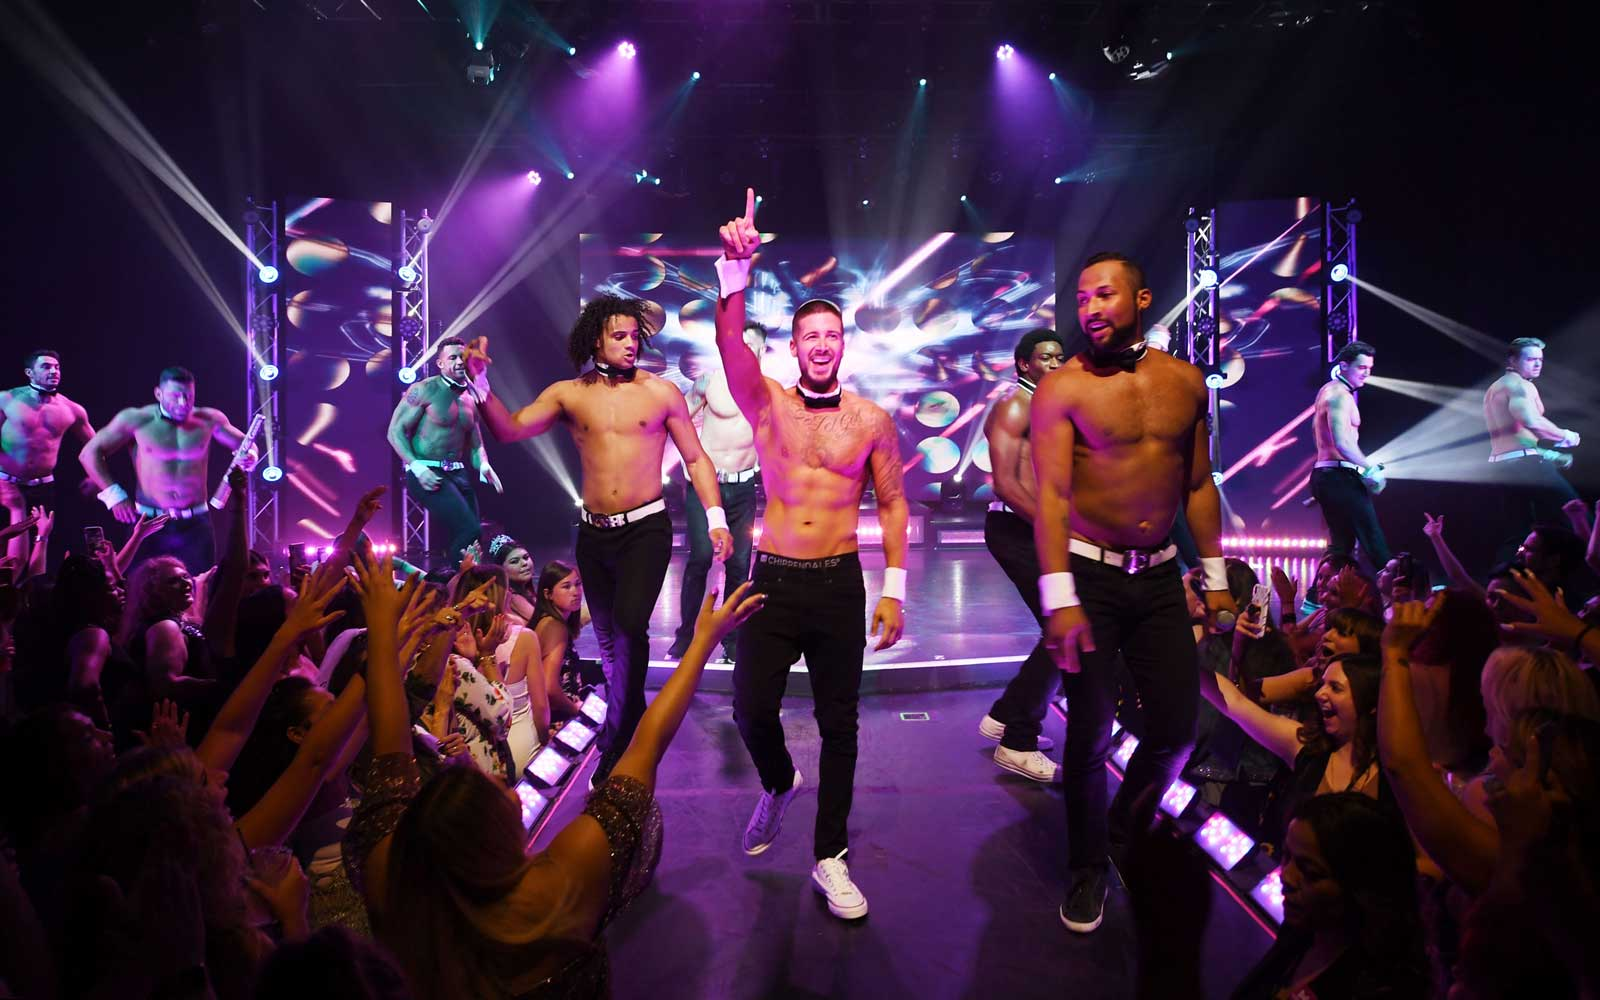 """Jersey Shore"" Star Vinny Guadagnino Returns To Chippendales As Celebrity Guest Host By Popular Demand At Rio All-Suite Hotel & Casino"